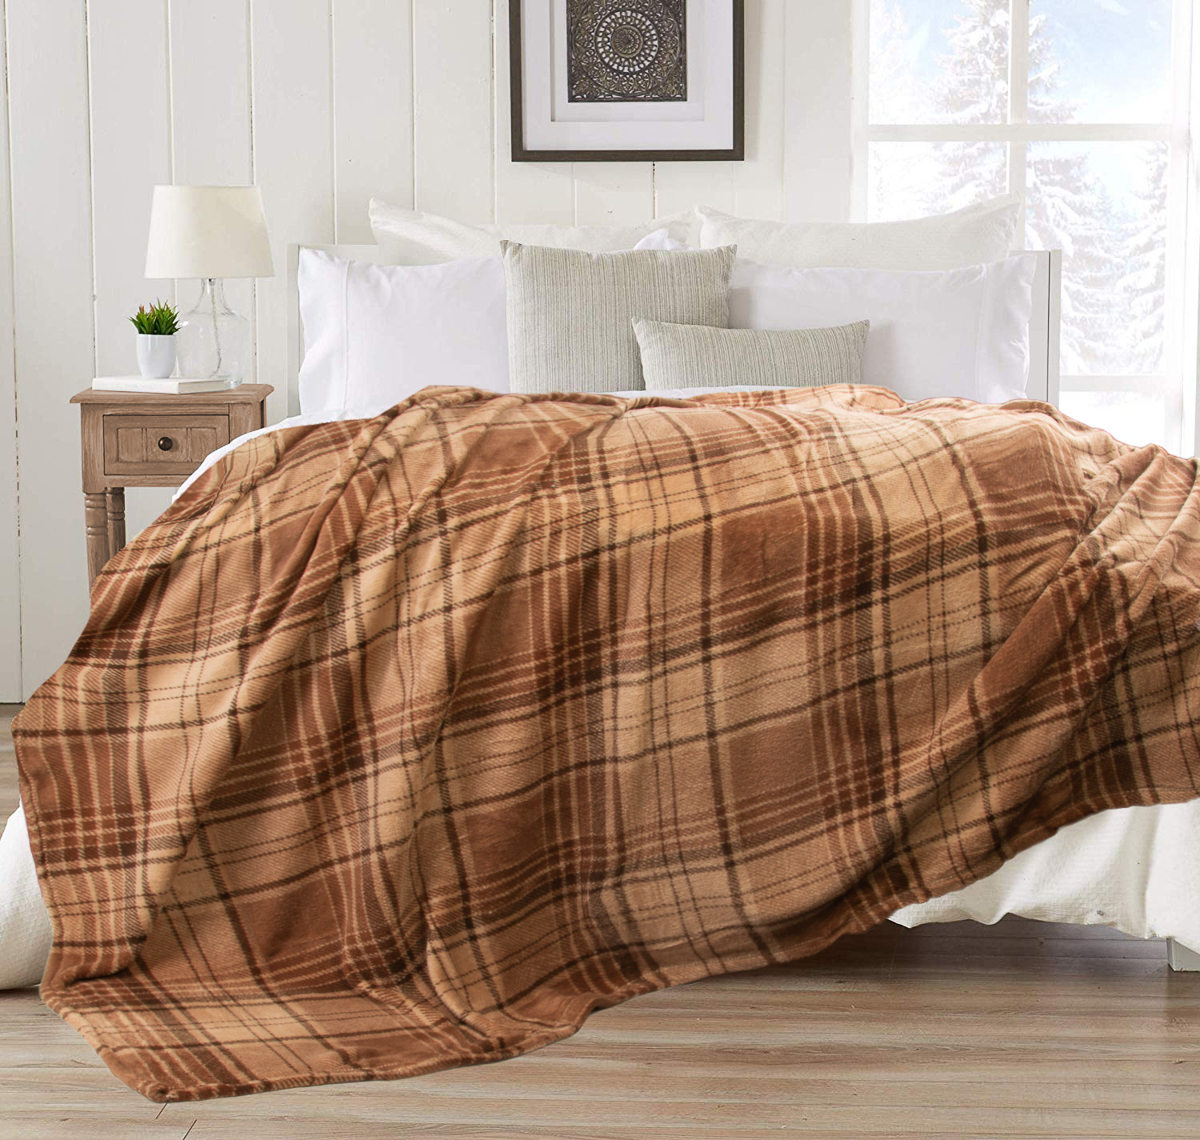 "Berkshire 90"" x 90"" Blanket Plush Plaid Fuzzy Throw Blanket For Couch Chair Bed Full Size Or Queen Mattress"